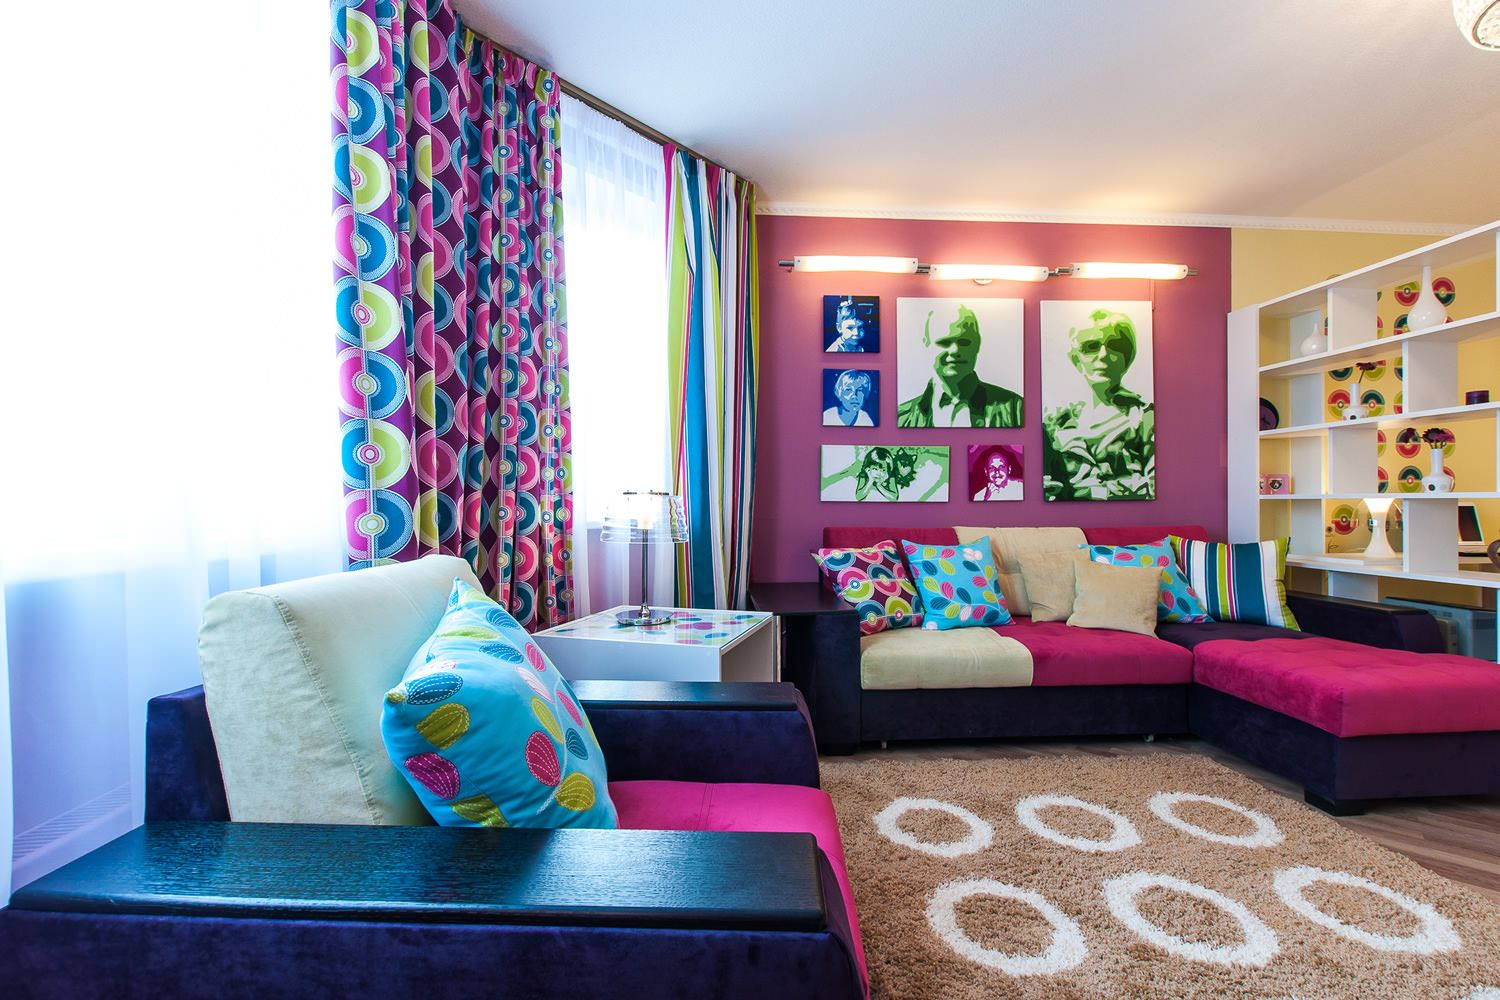 Colorful combinations at the pop-art interior